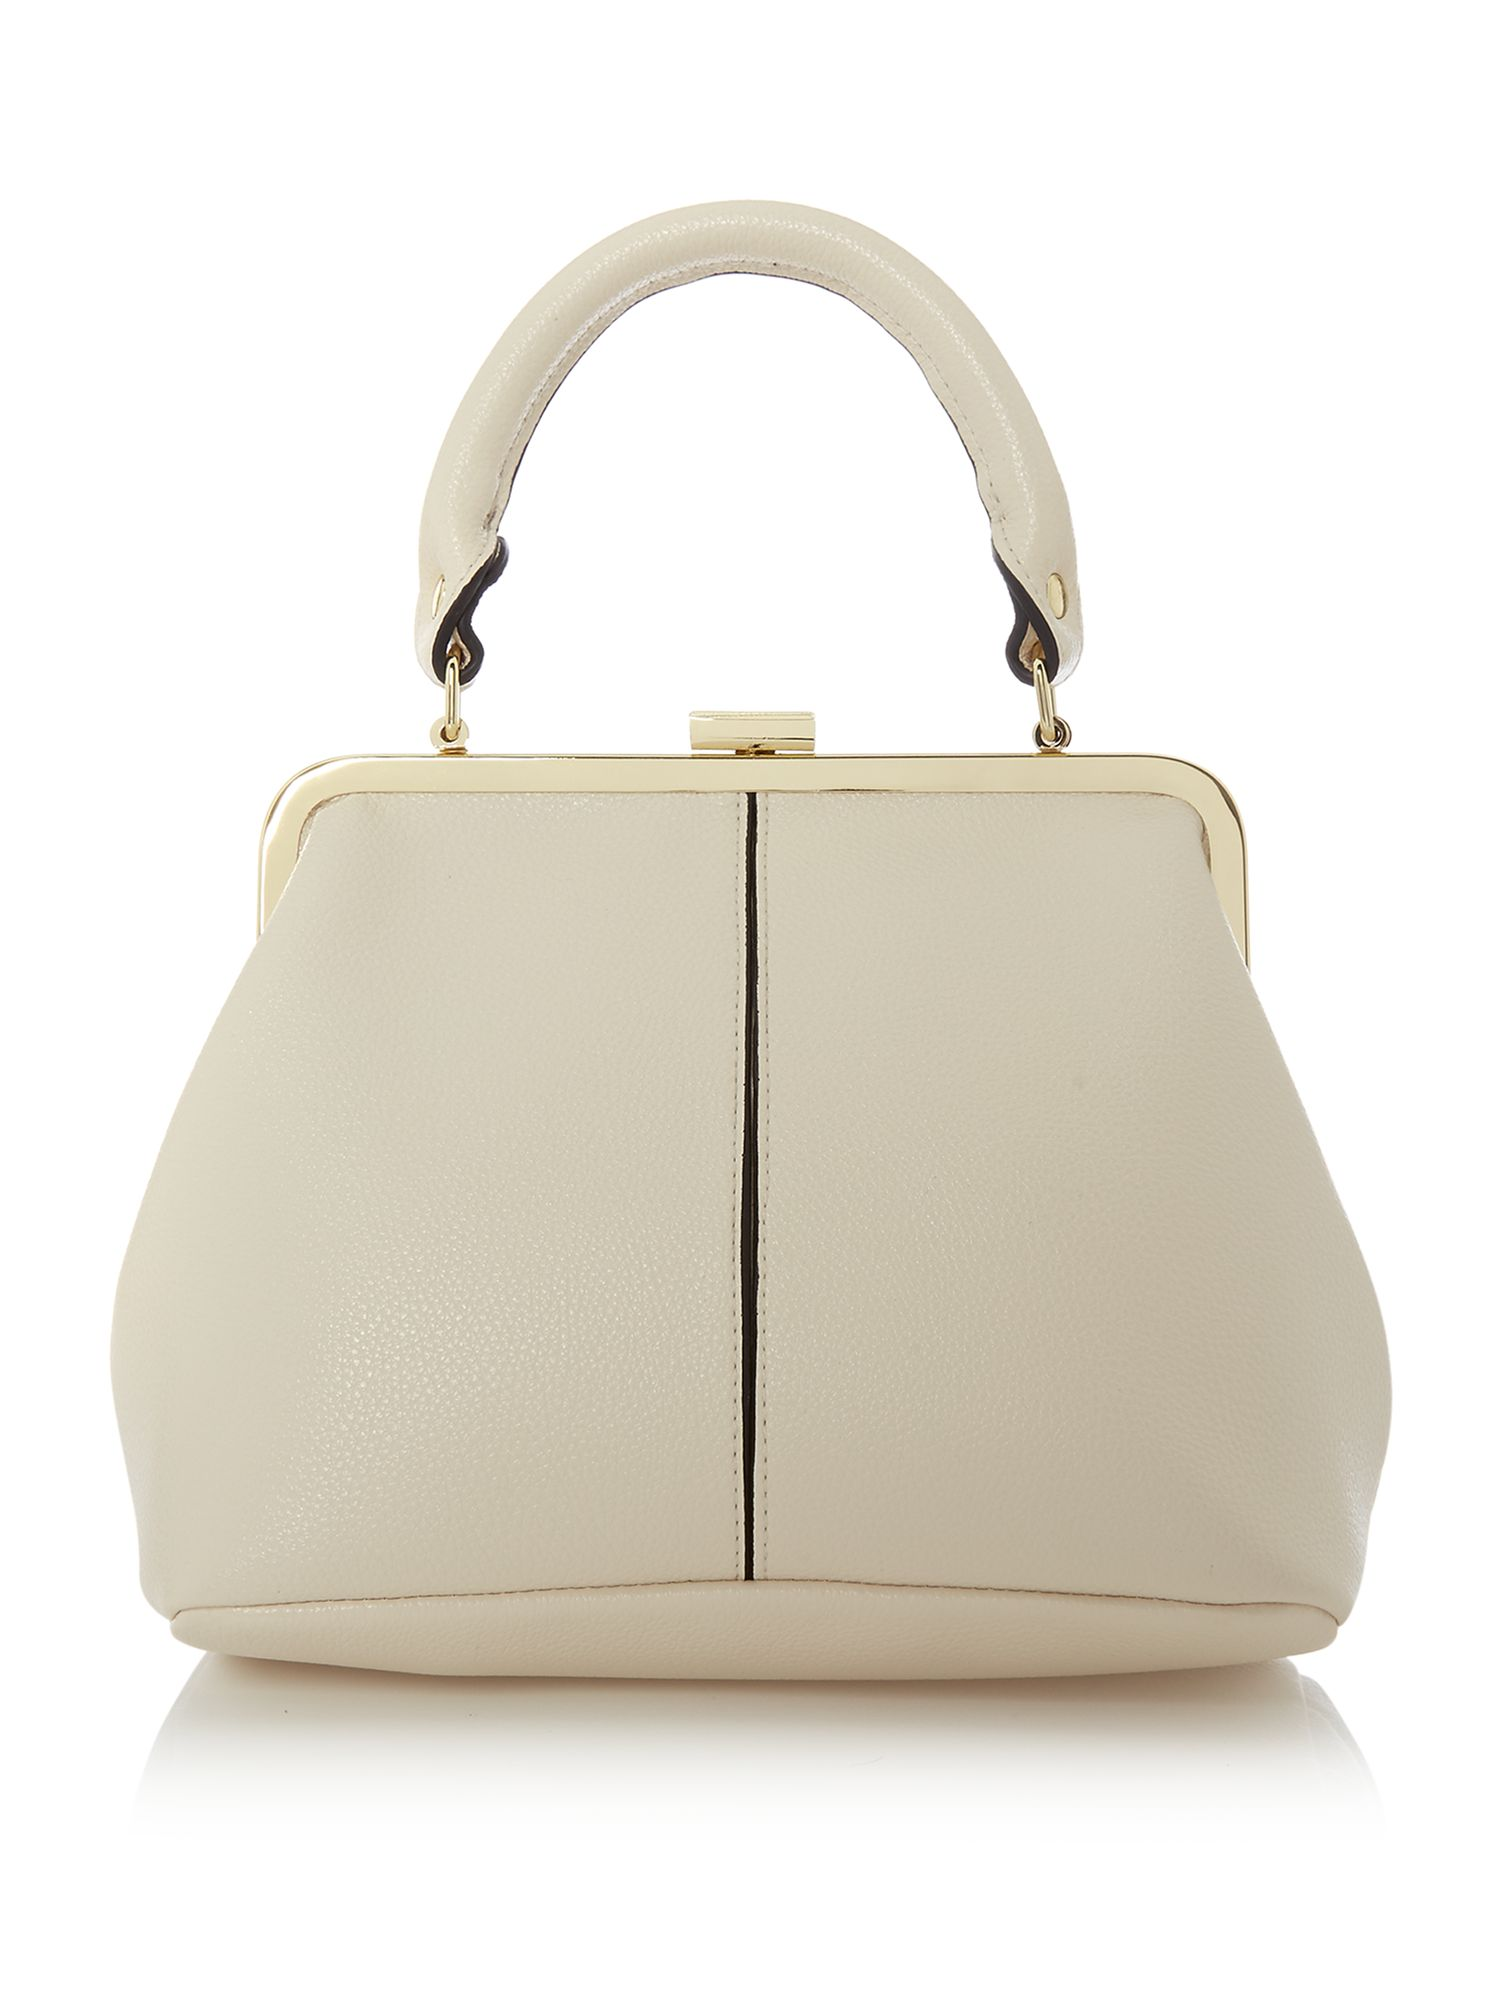 Therapy Daisy frame bag, White